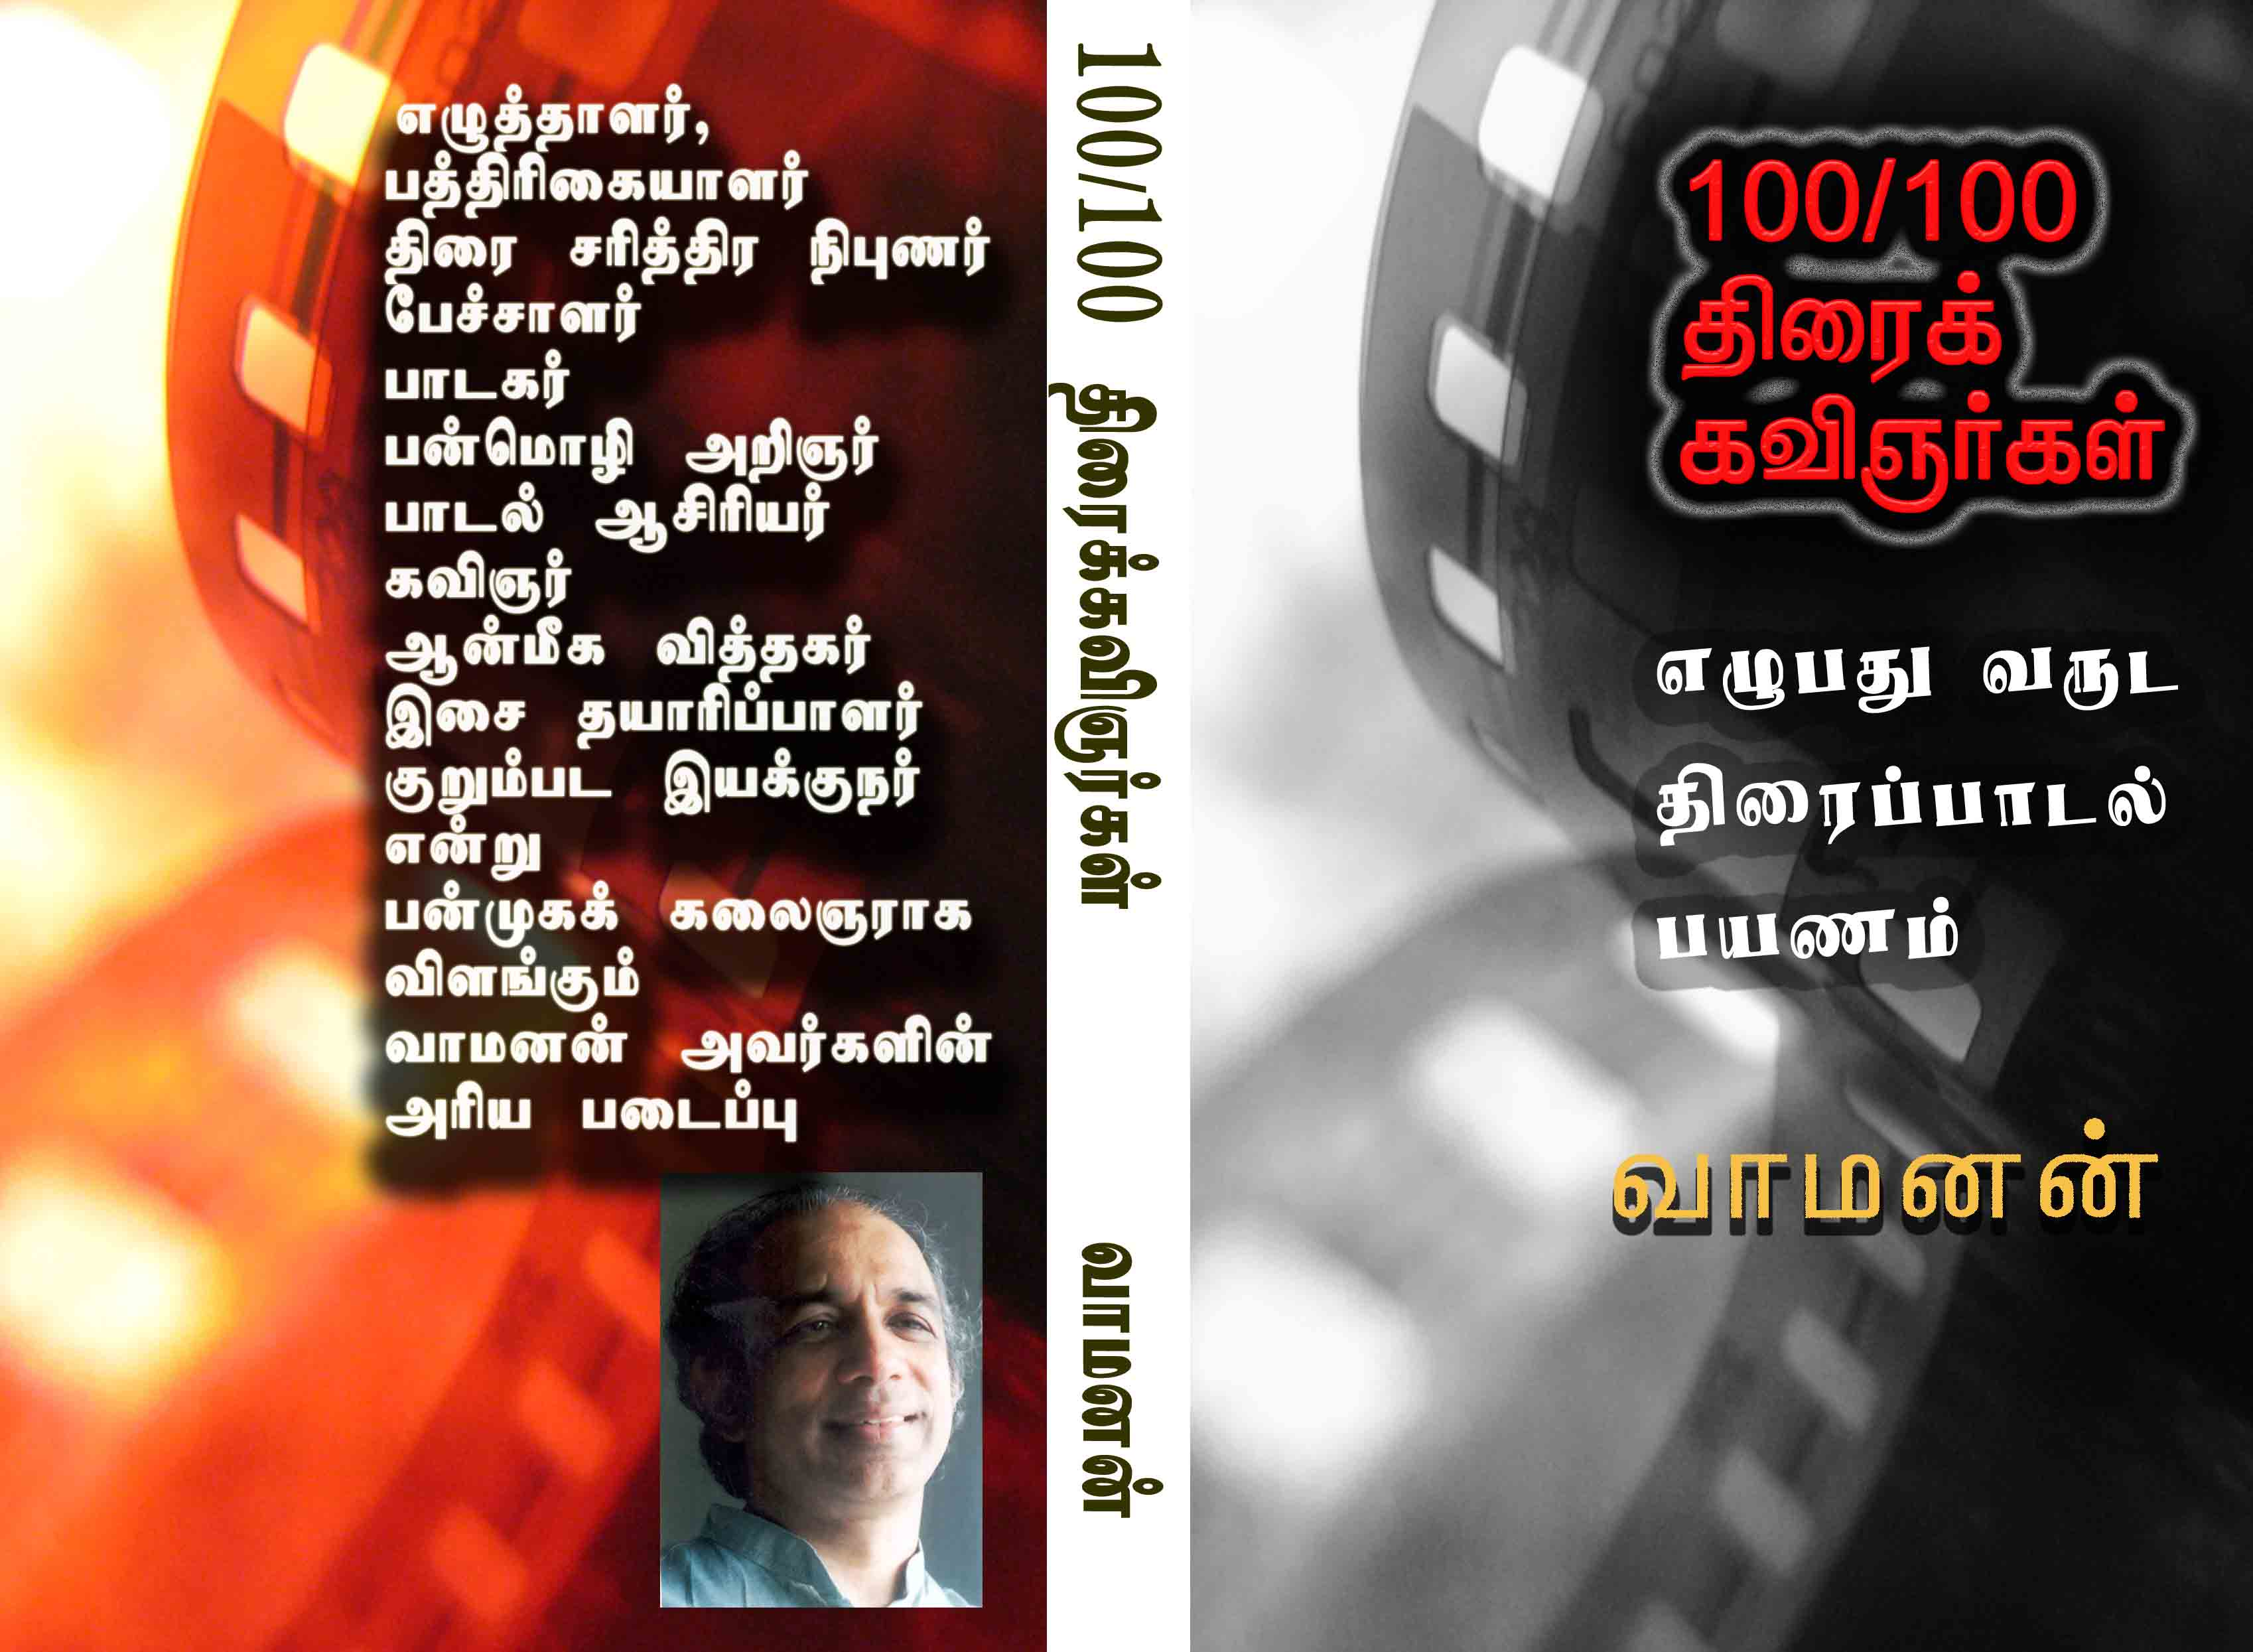 Tamil Film Songs And Lyrics Down The Decades Vamanans Sight